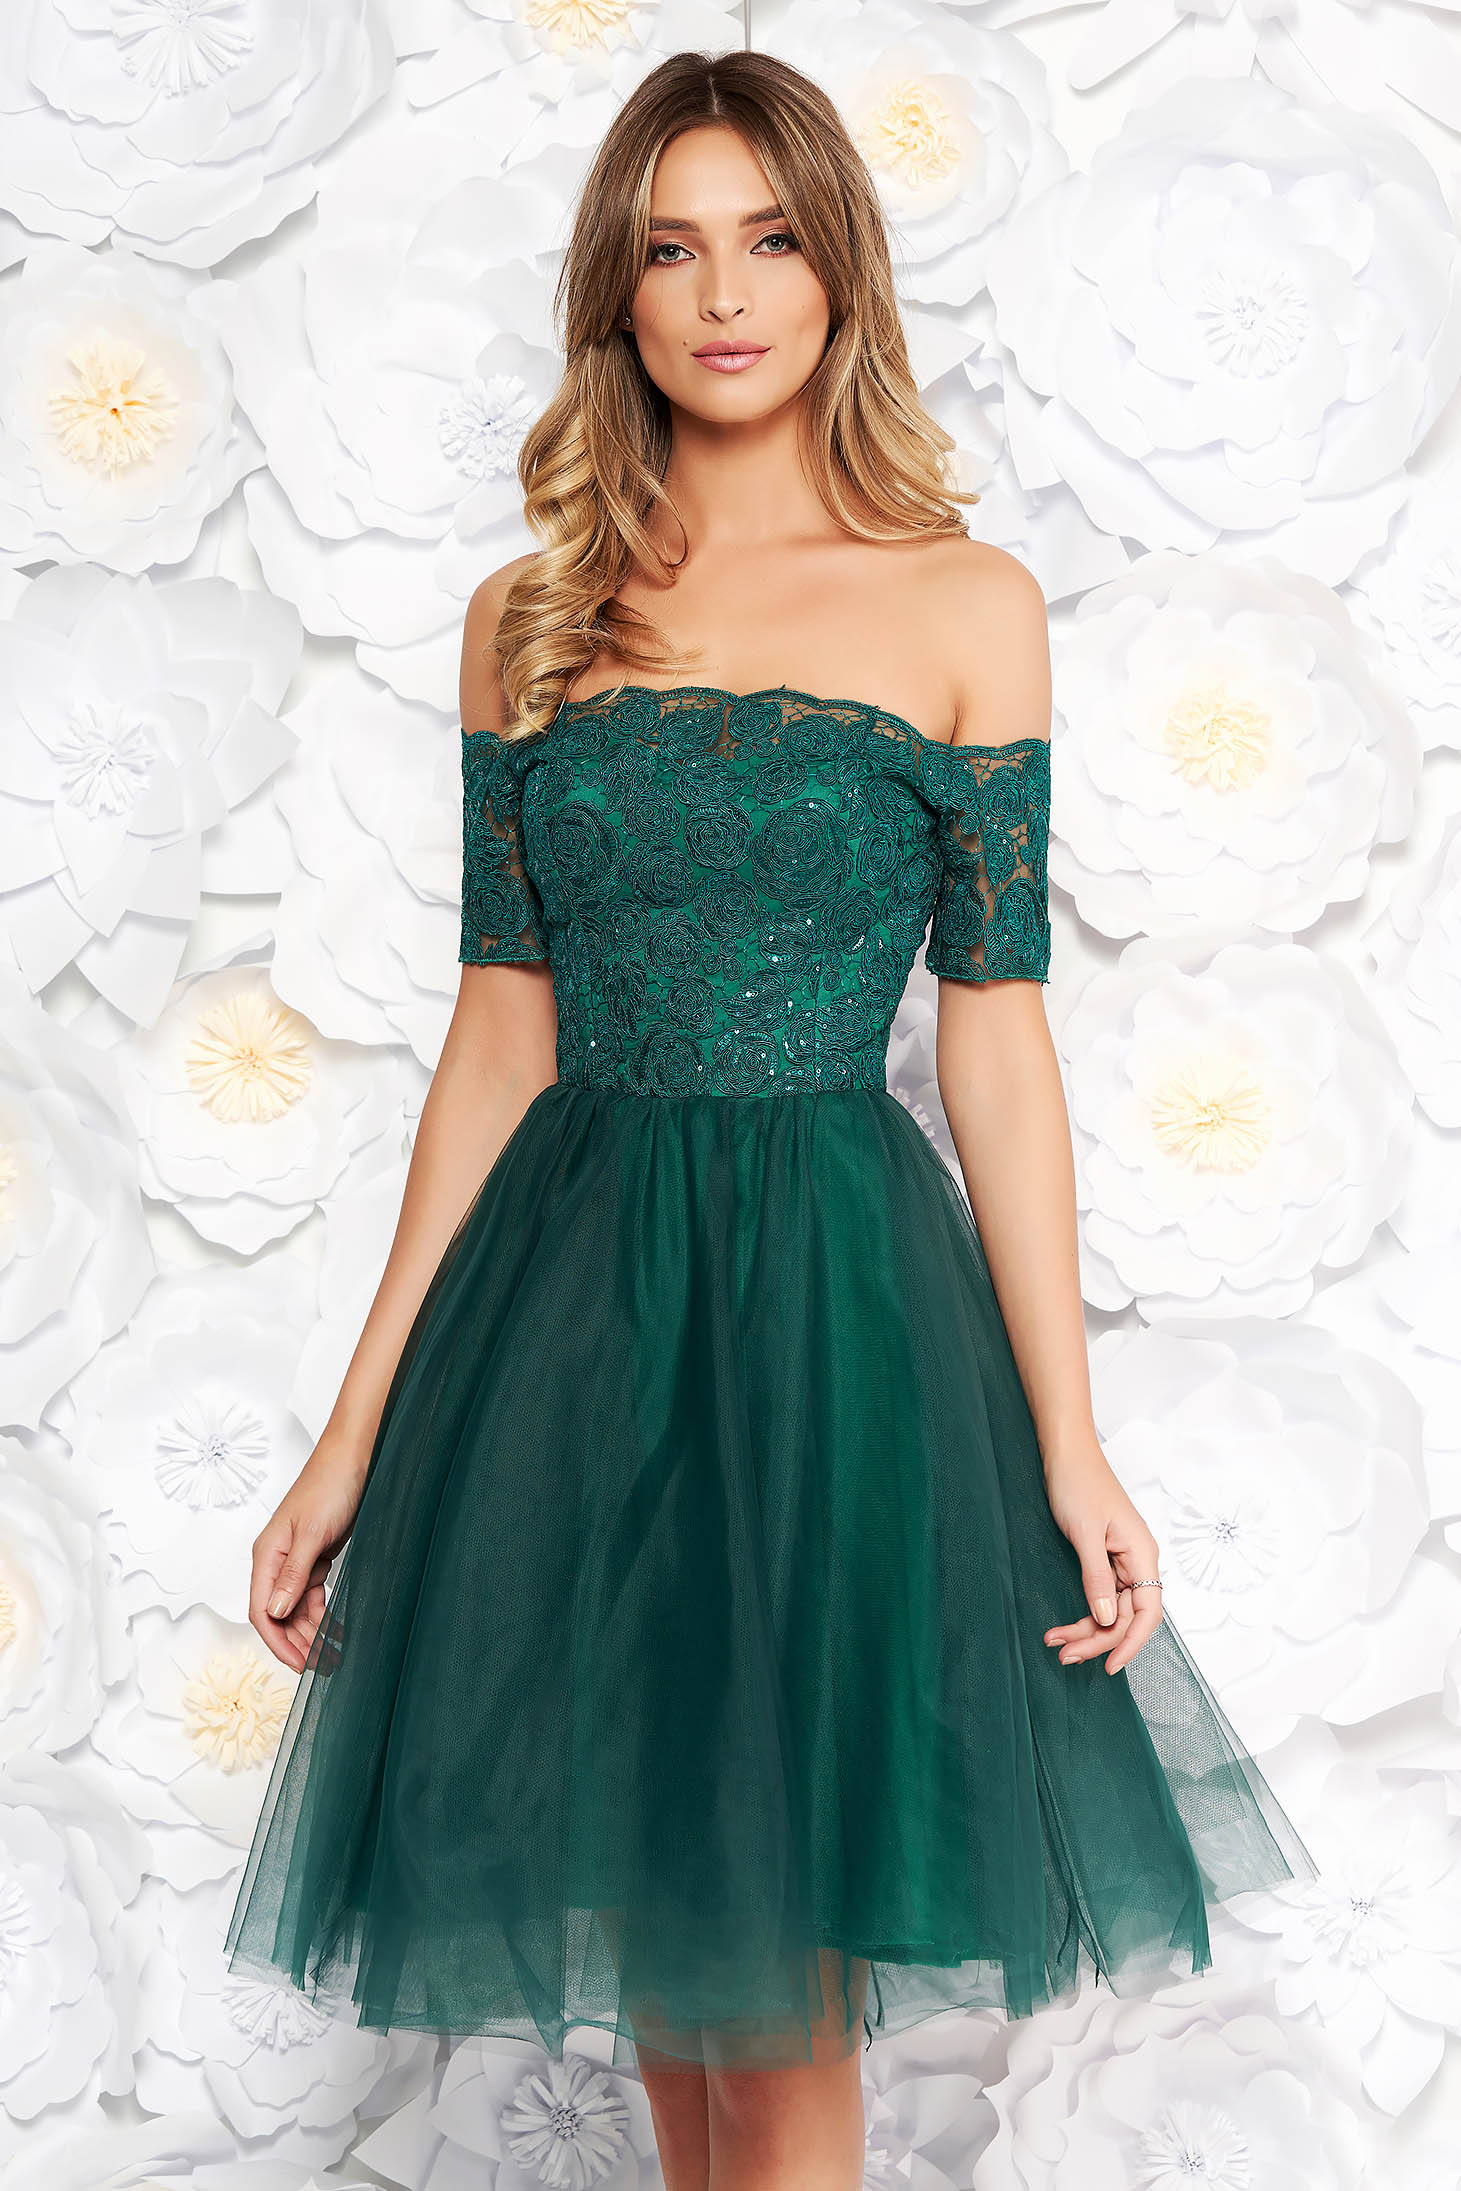 Green Artista occasional cloche dress from laced fabric net with push-up cups with sequin embellished details